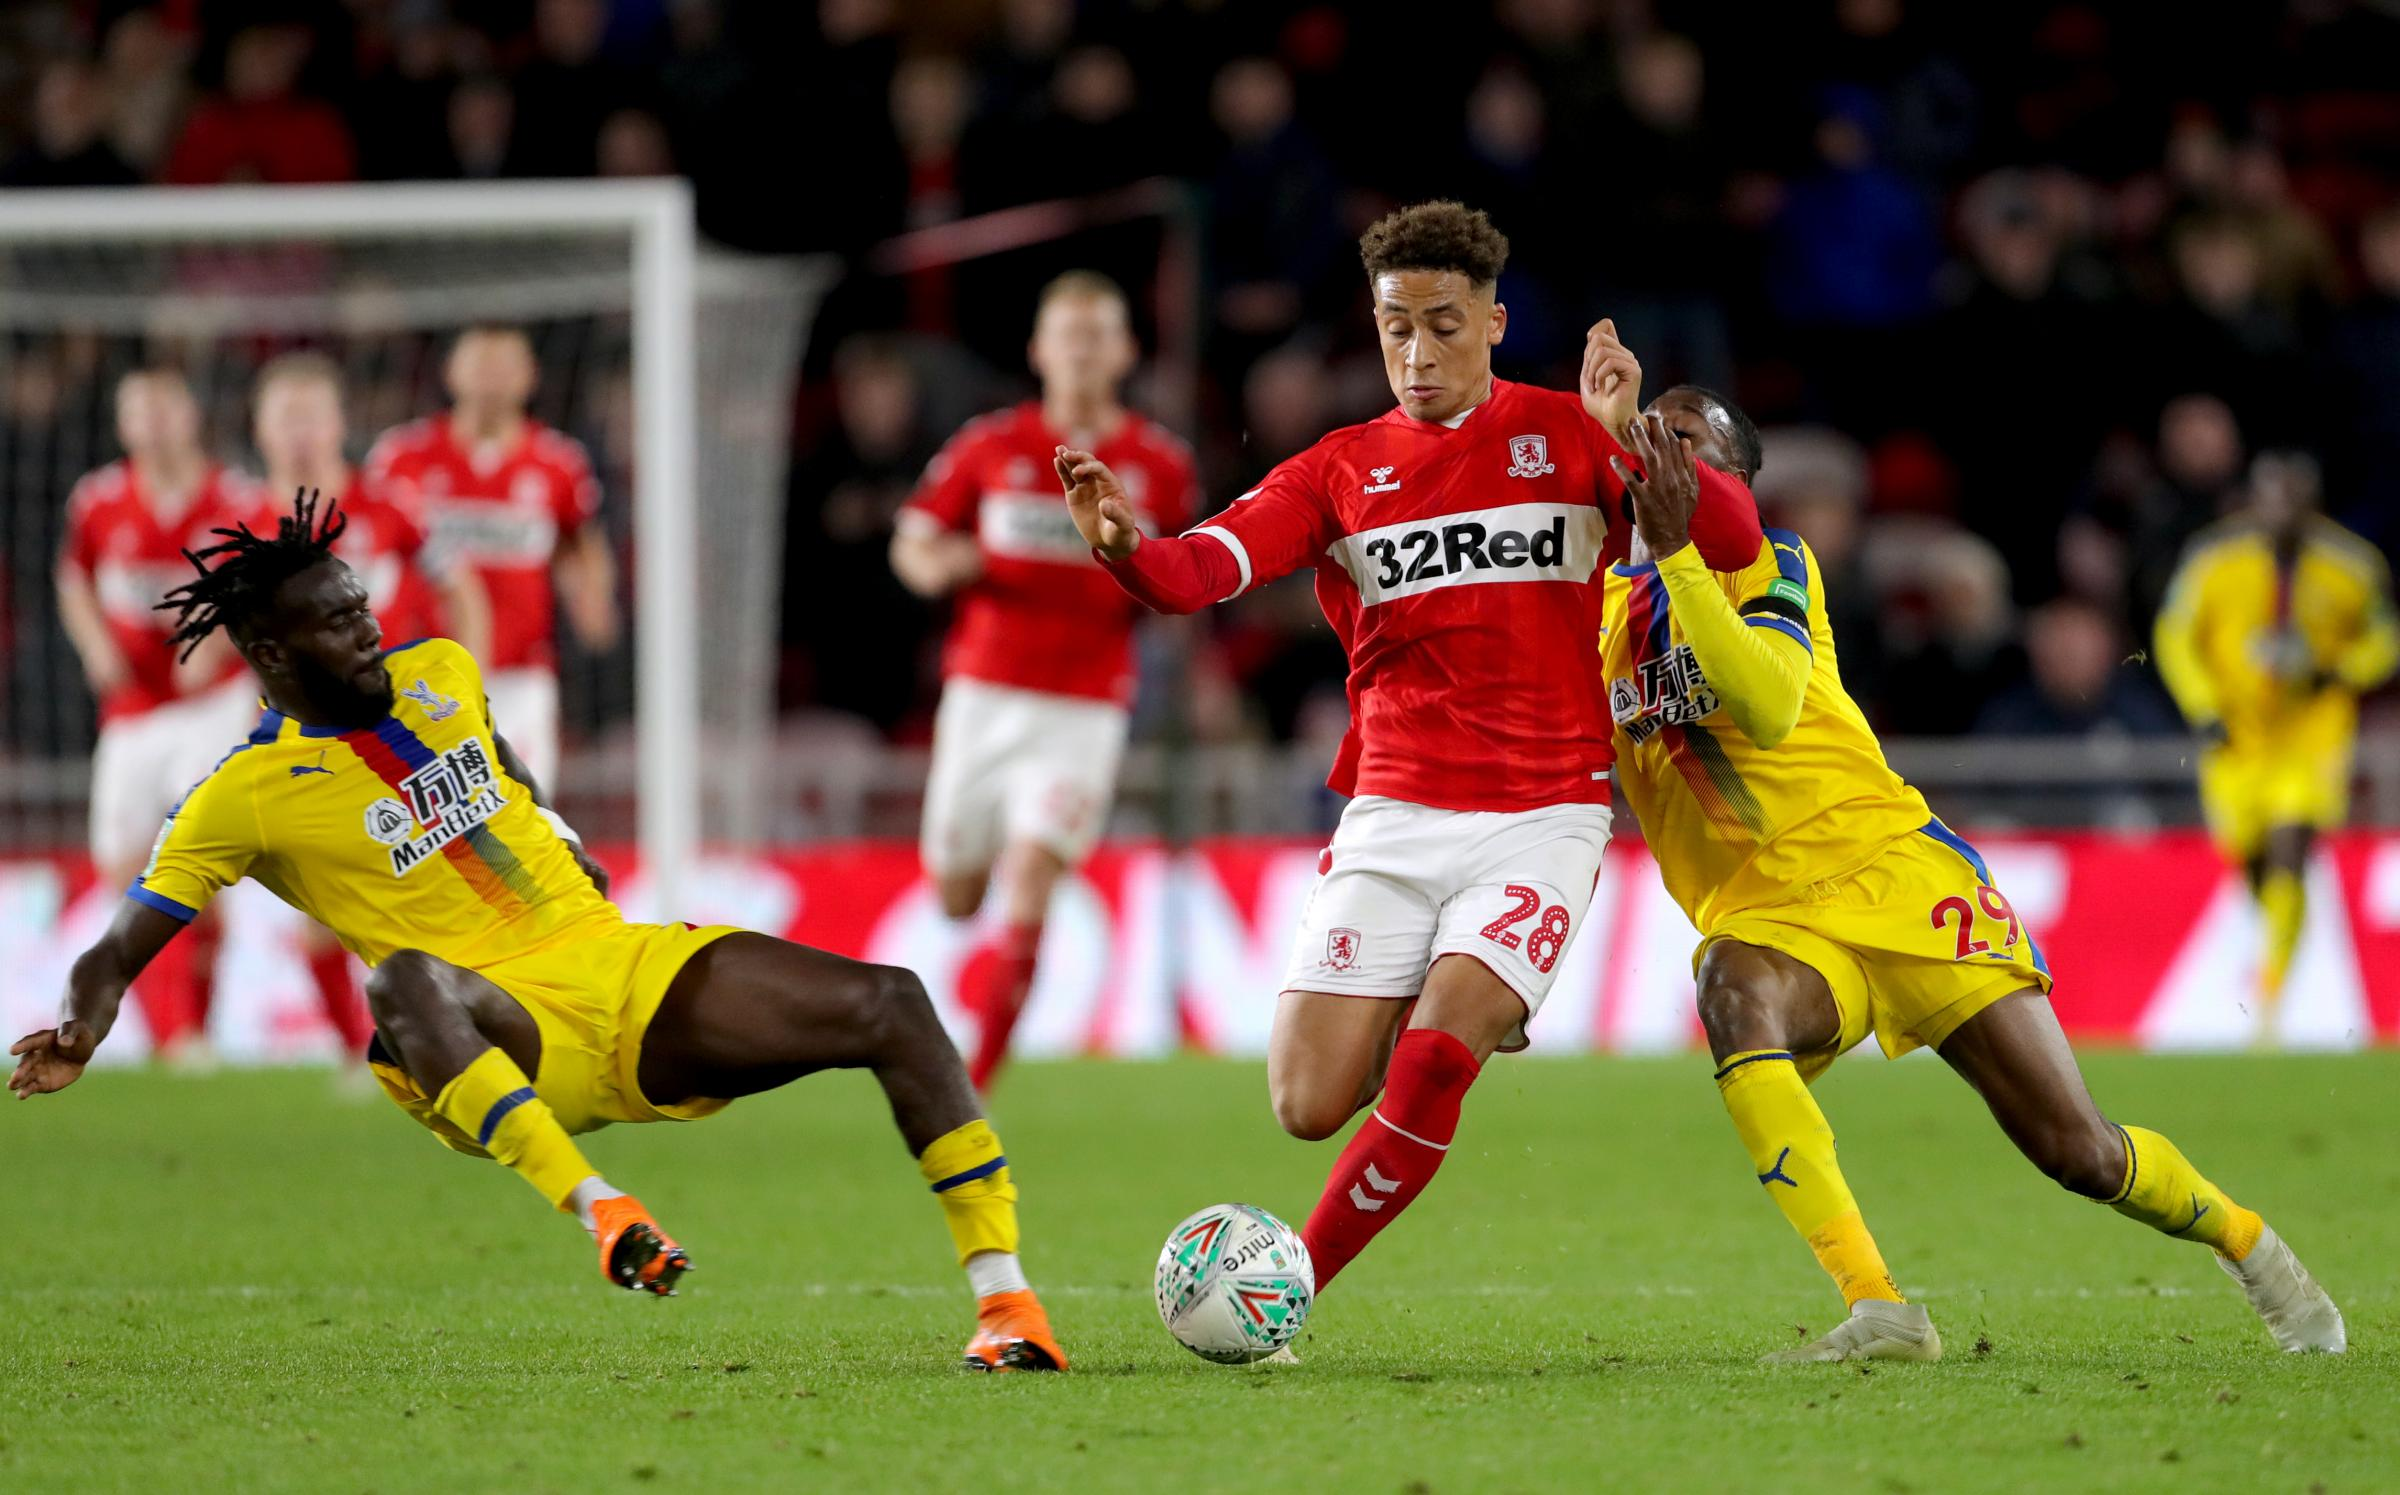 Middlesbrough's Marcus Tavernier (centre) battles for the ball with Crystal Palace's Aaron Wan-Bissaka (right) and Pape Souare during the Carabao Cup, Fourth Round match at the Riverside Stadium, Middlesbrough..